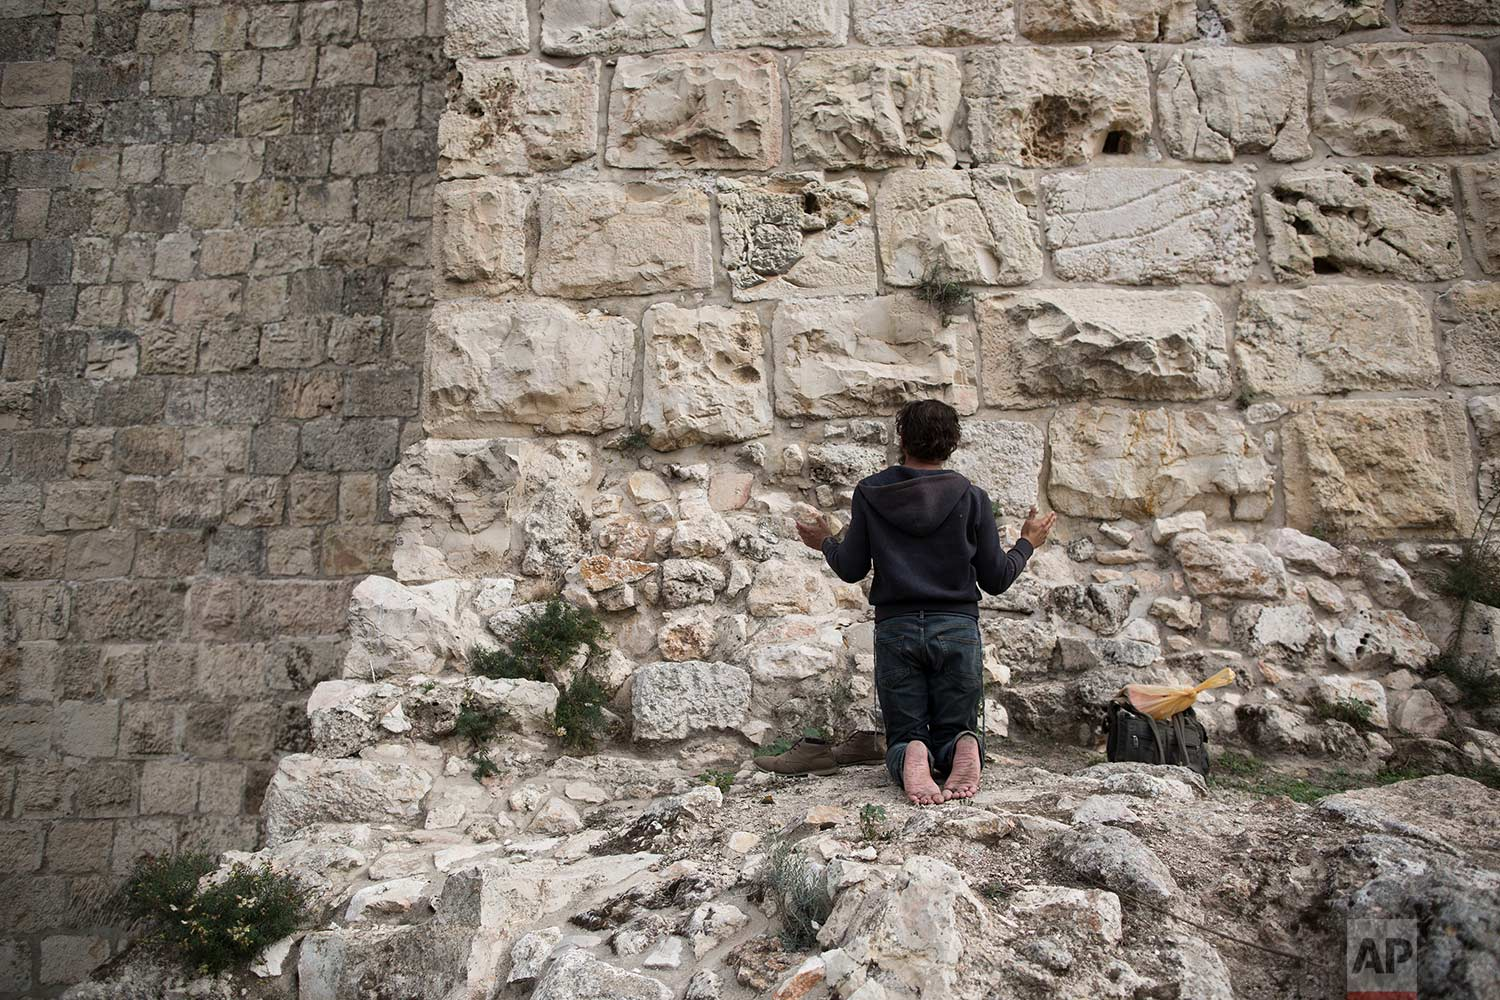 In this Tuesday, Dec. 19, 2017 photo, a man prays facing Jerusalem's Old City walls between Jaffa Gate and Zion Gate. (AP Photo/Oded Balilty)